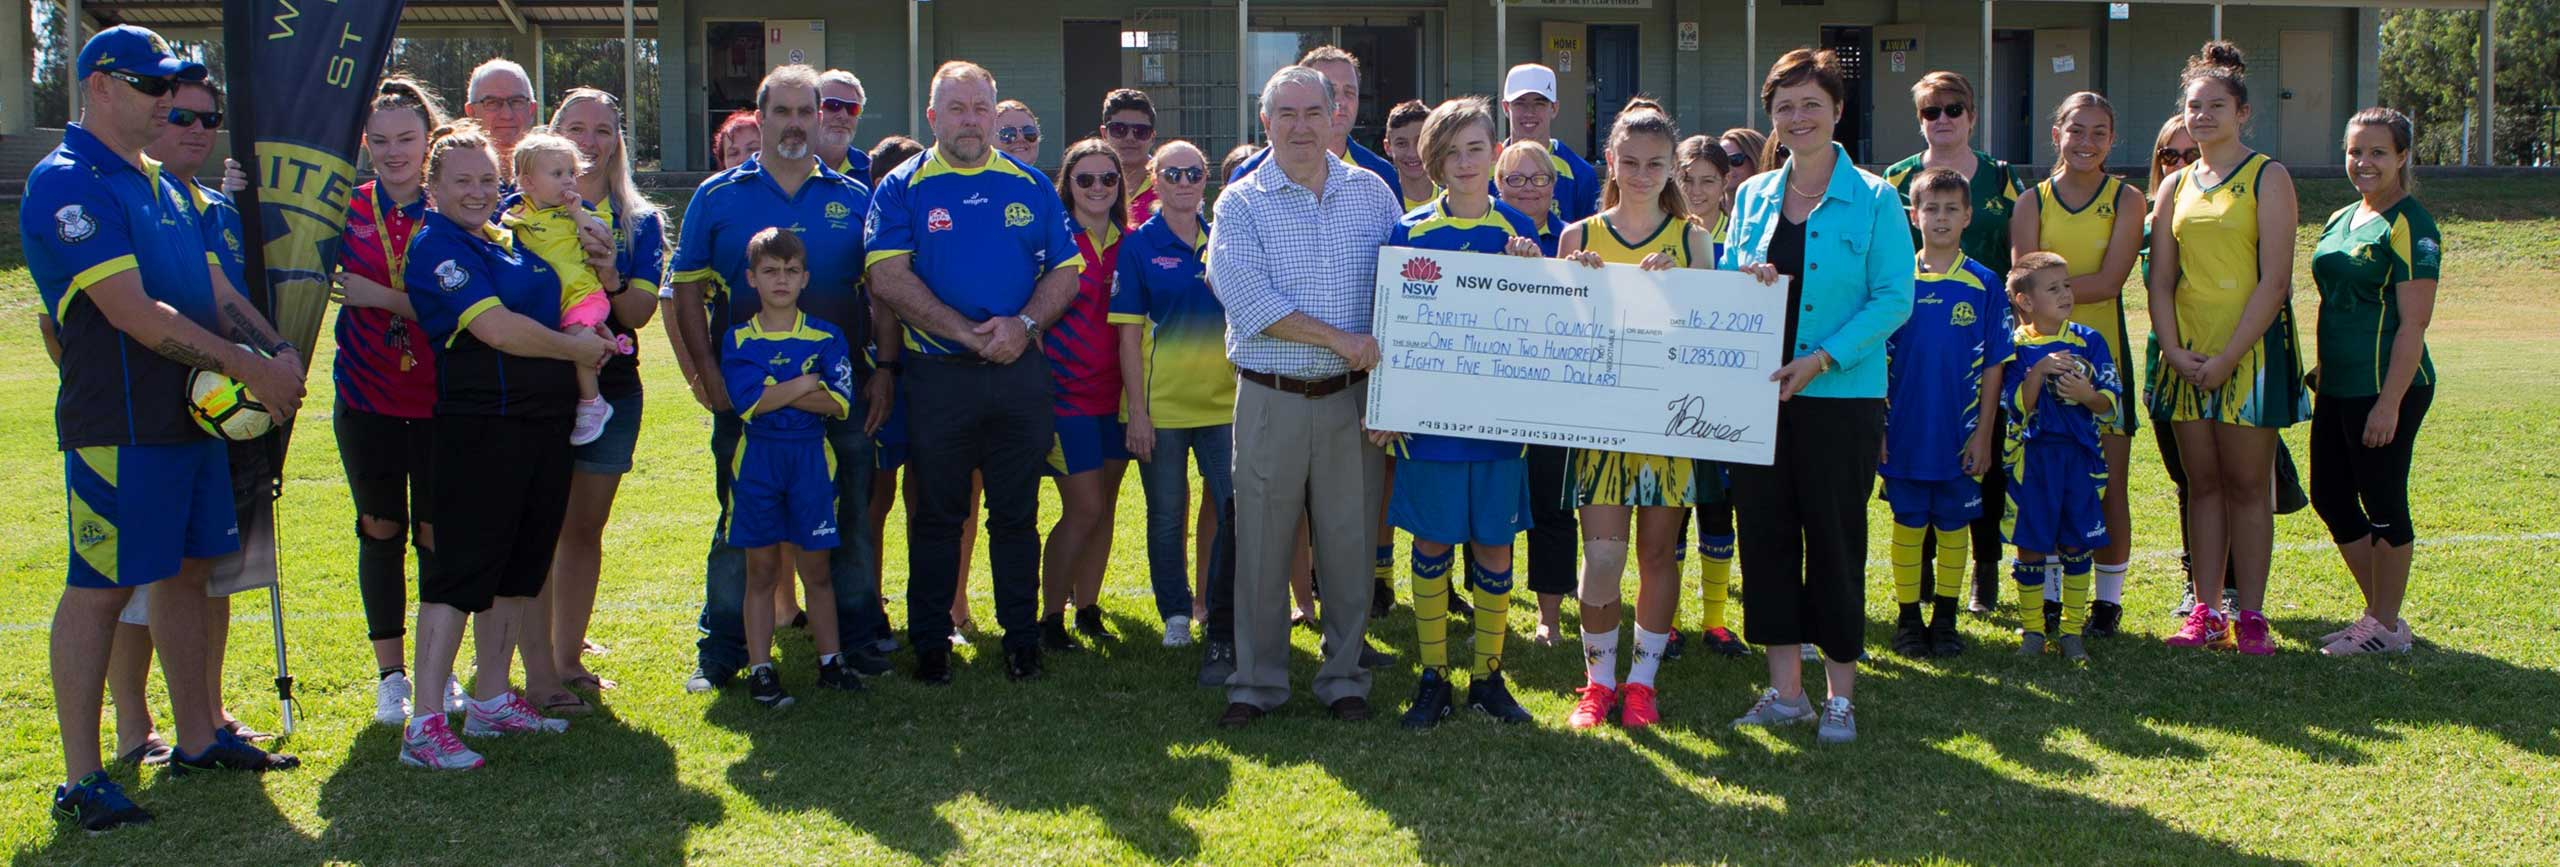 Penrith Mayor Ross Fowler OAM and Member for Mulgoa Tanya Davies with St Clair Soccer and St Clair Netball club committee members and volunteers.